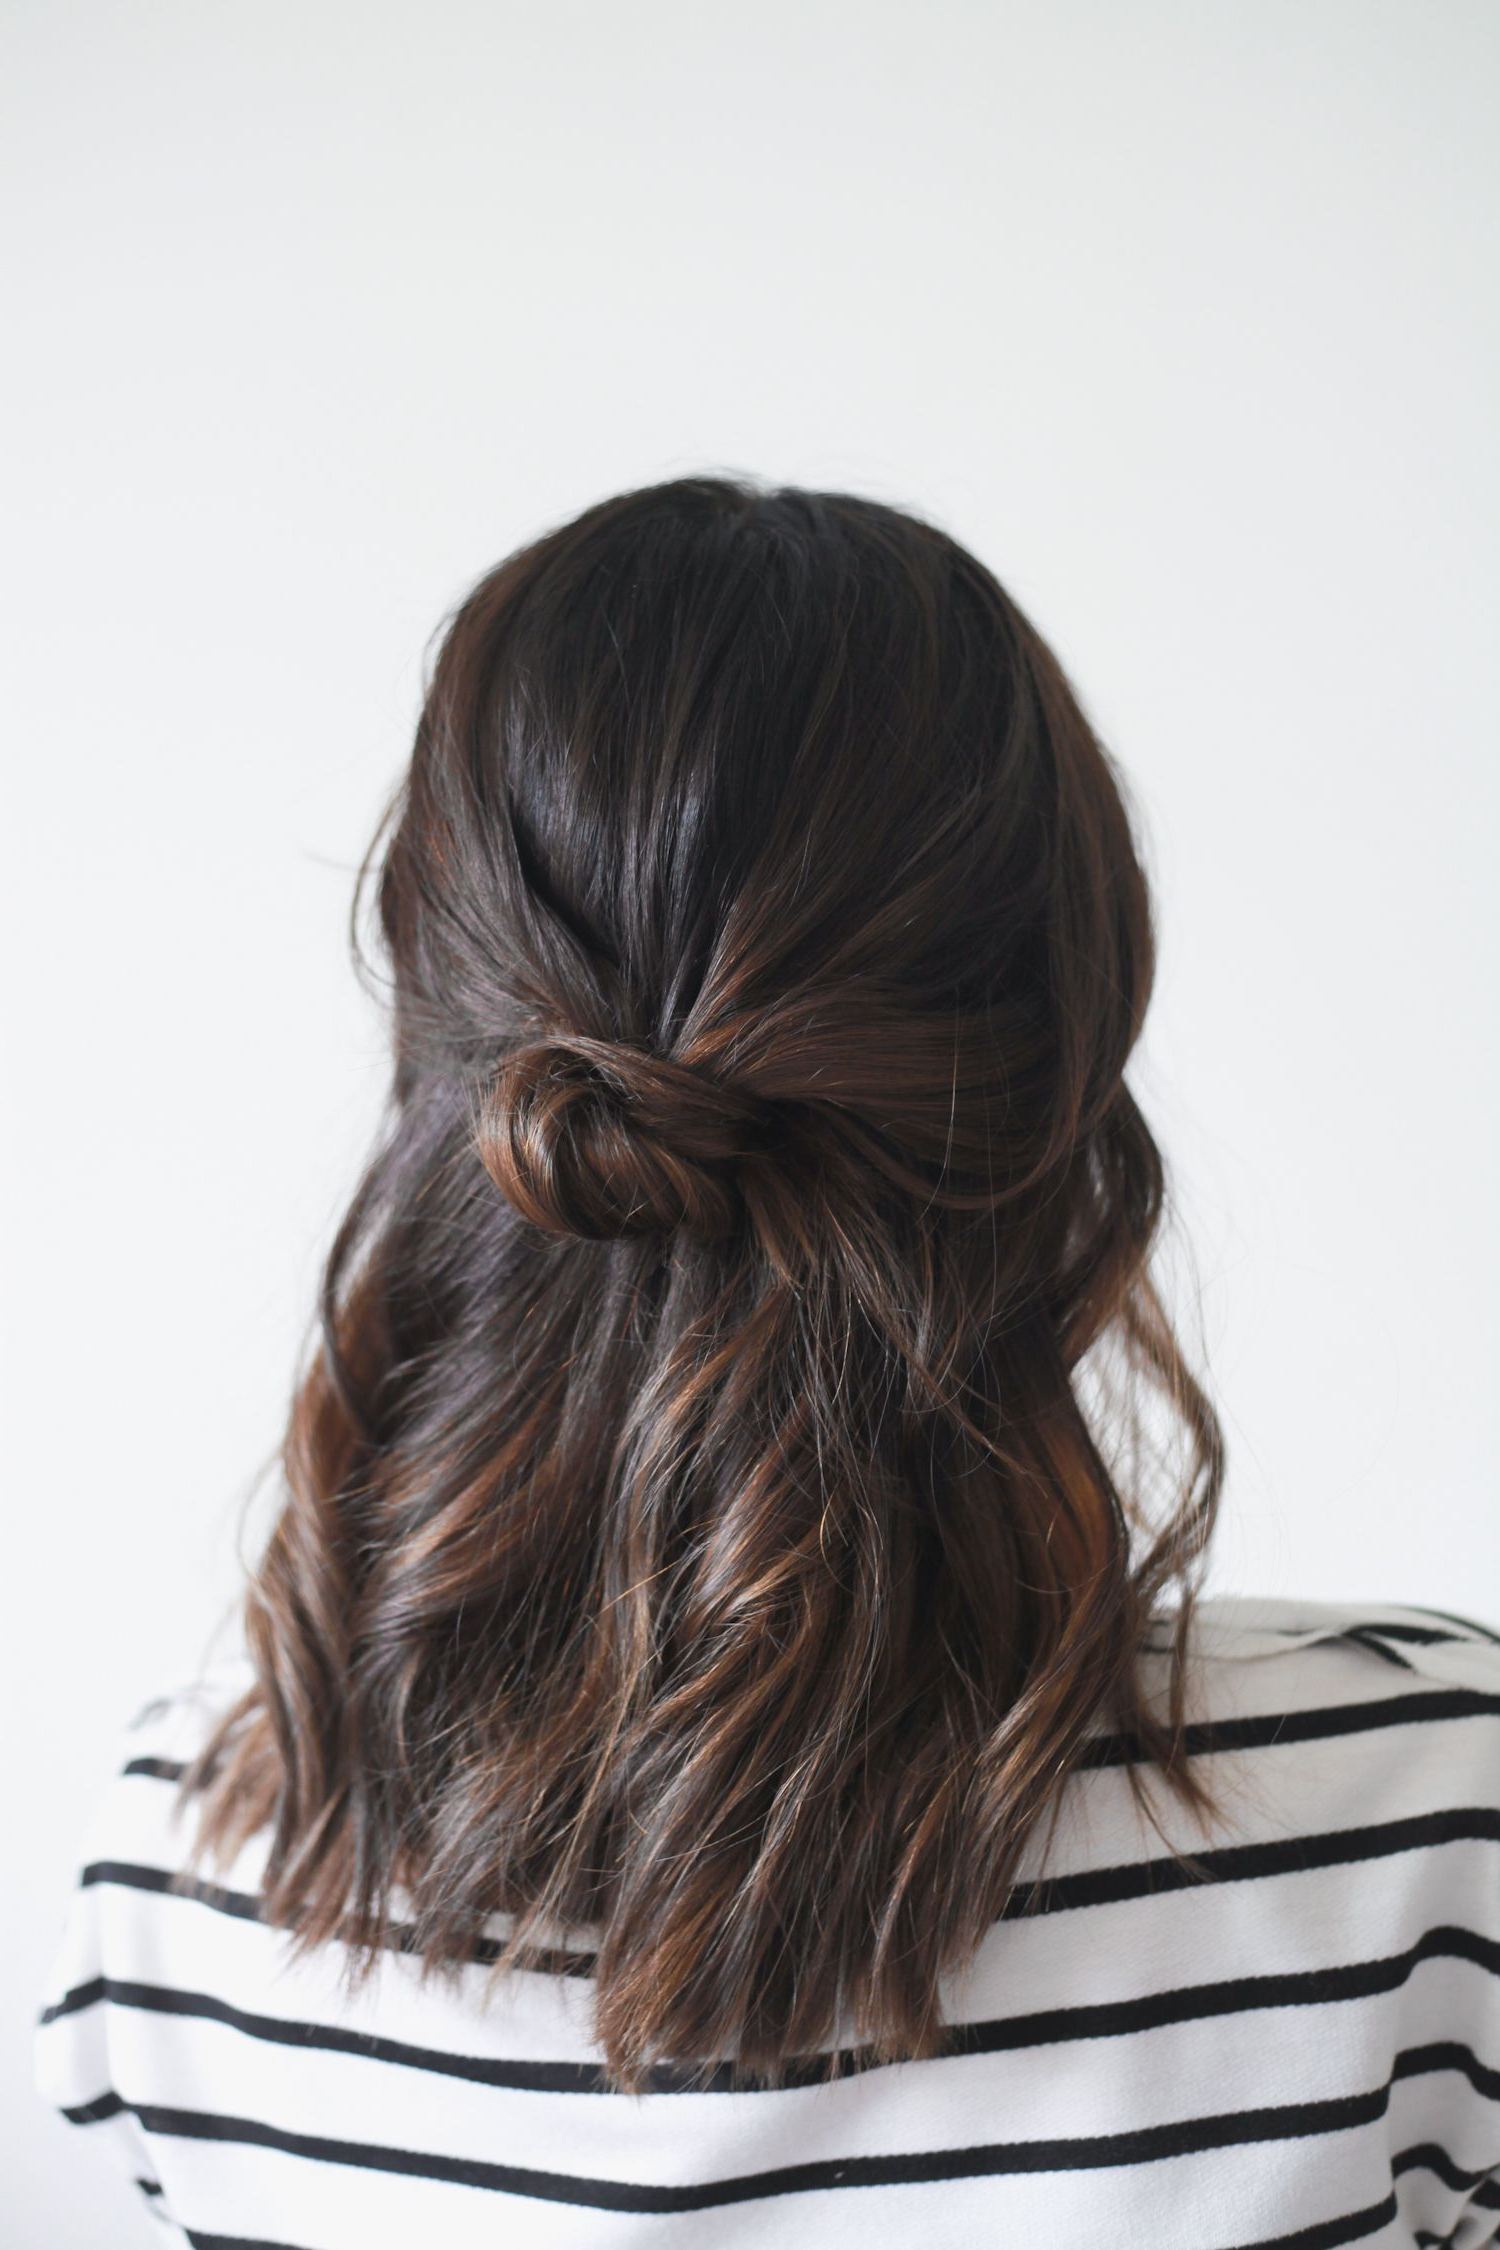 Hair (View 2 of 20)